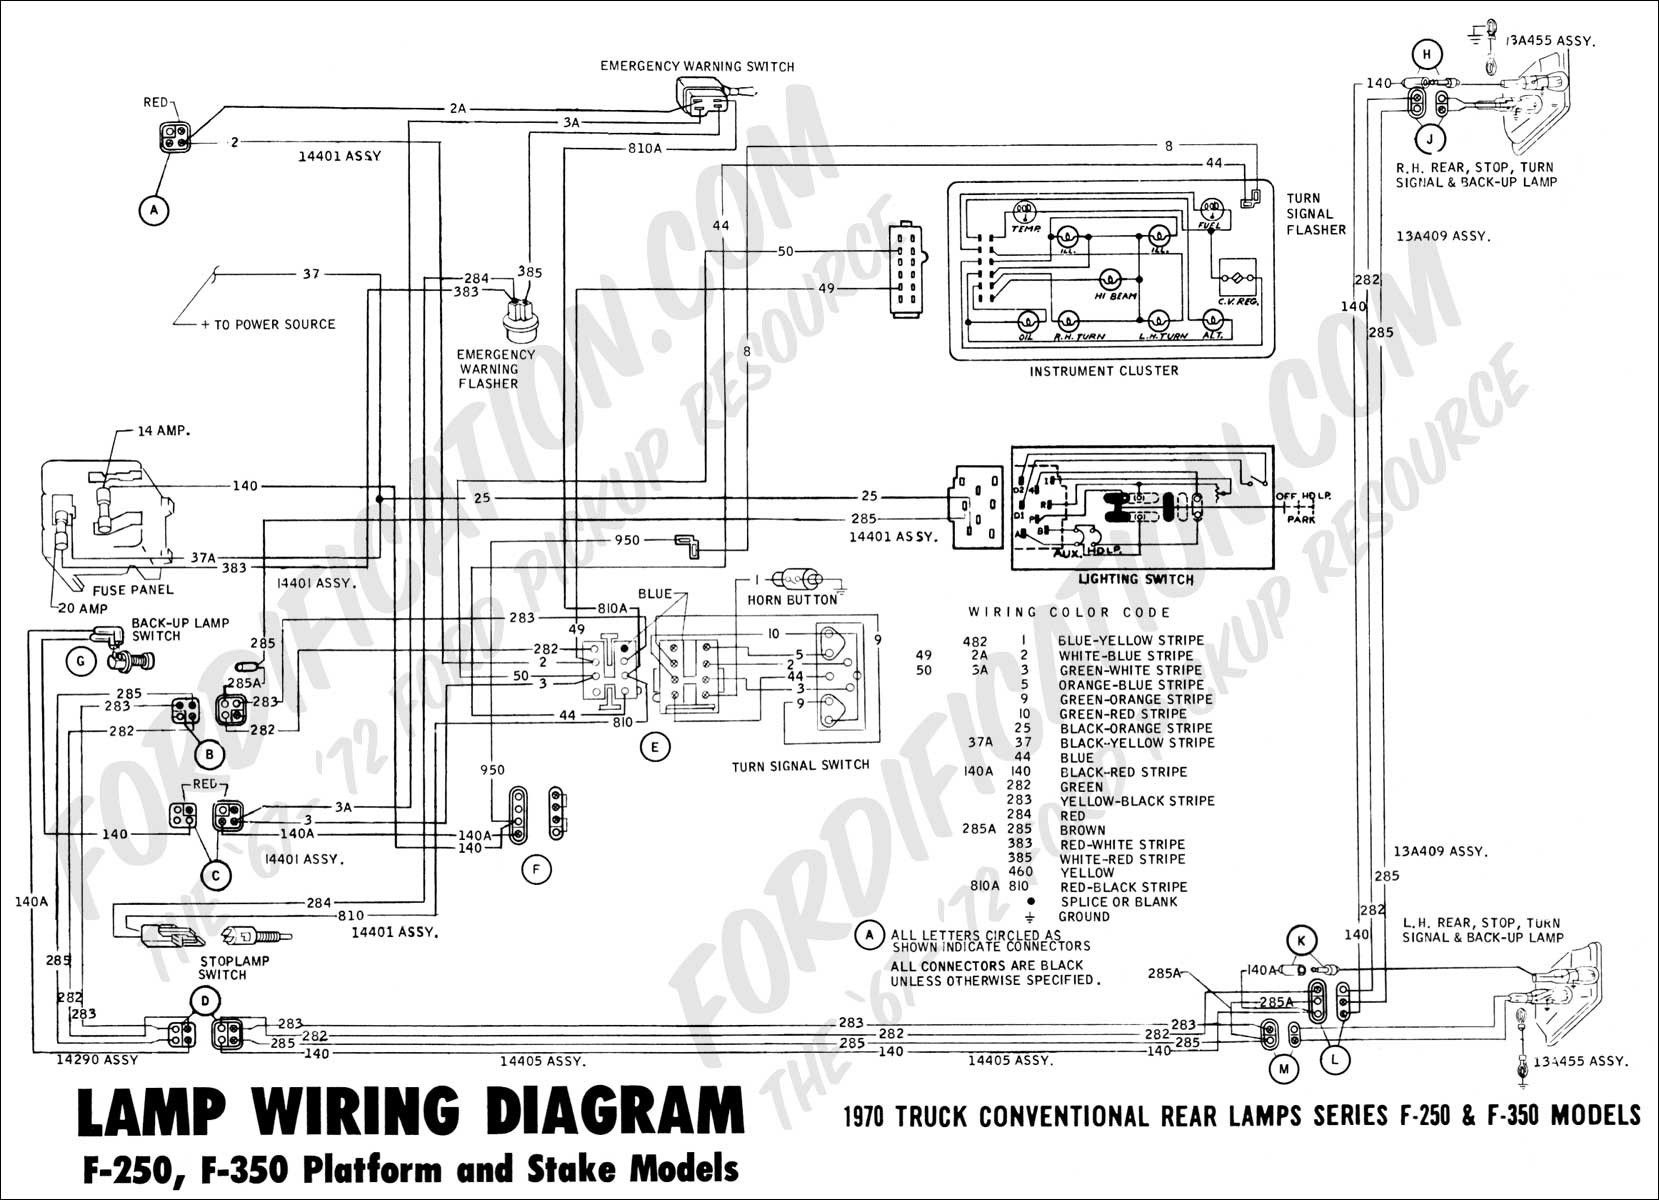 2005 ford f 250 light wiring example electrical wiring diagram 1986 f250 tail light wiring diagrams 1986 ford truck wiring harness rh parsplus co 1999 ford f 250 2006 ford f 250 publicscrutiny Choice Image